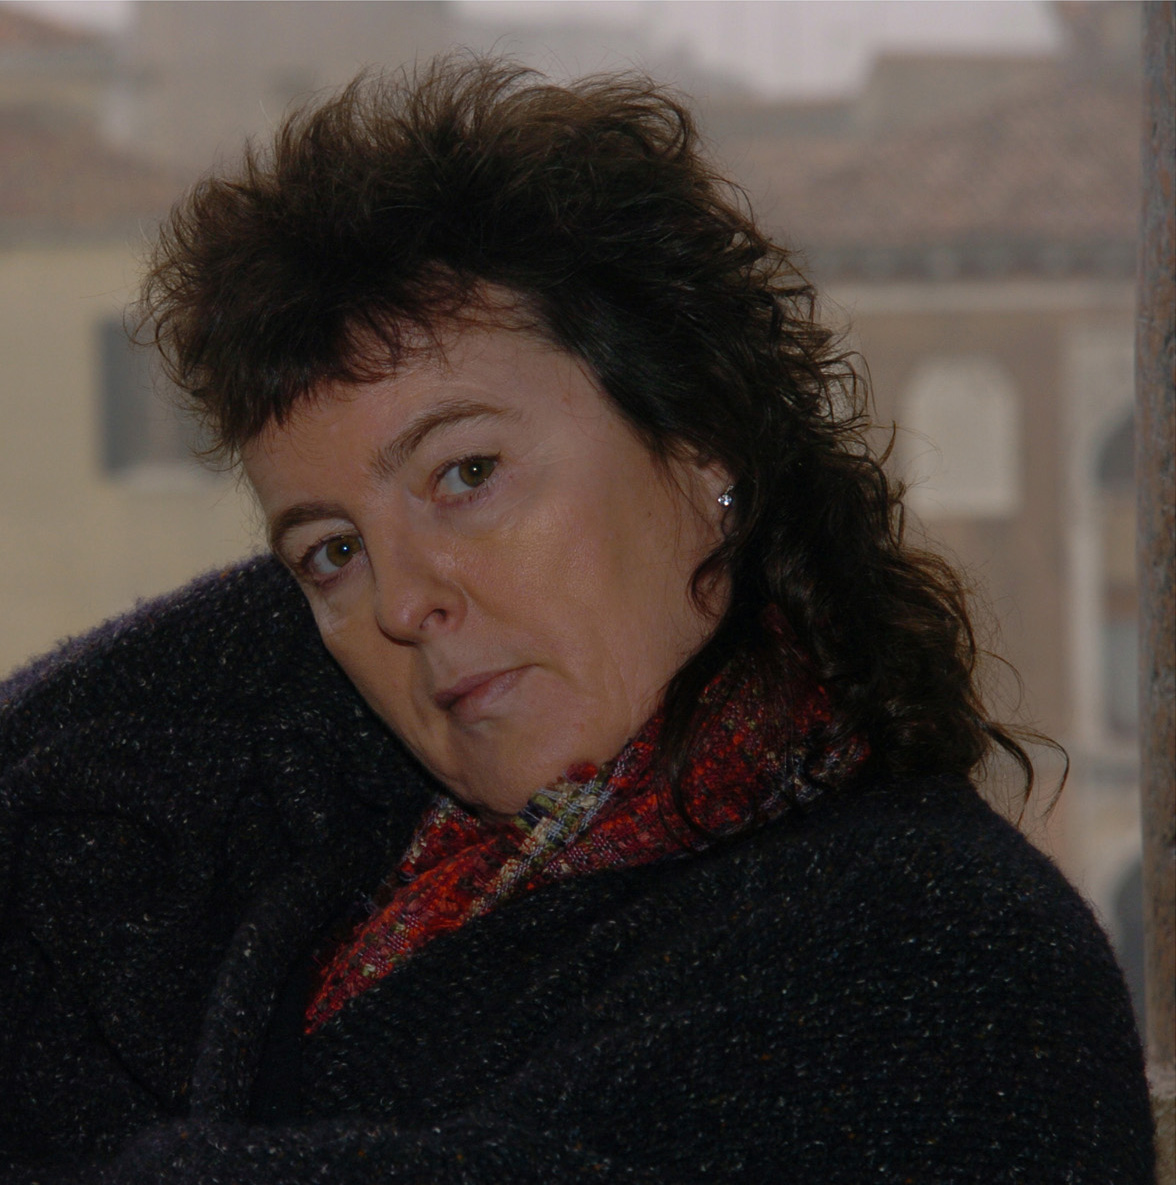 stealing carol ann duffy essays Read this essay on stealing by carol ann duffy come browse our large digital warehouse of free sample essays get the knowledge you need in order to pass your classes and more.